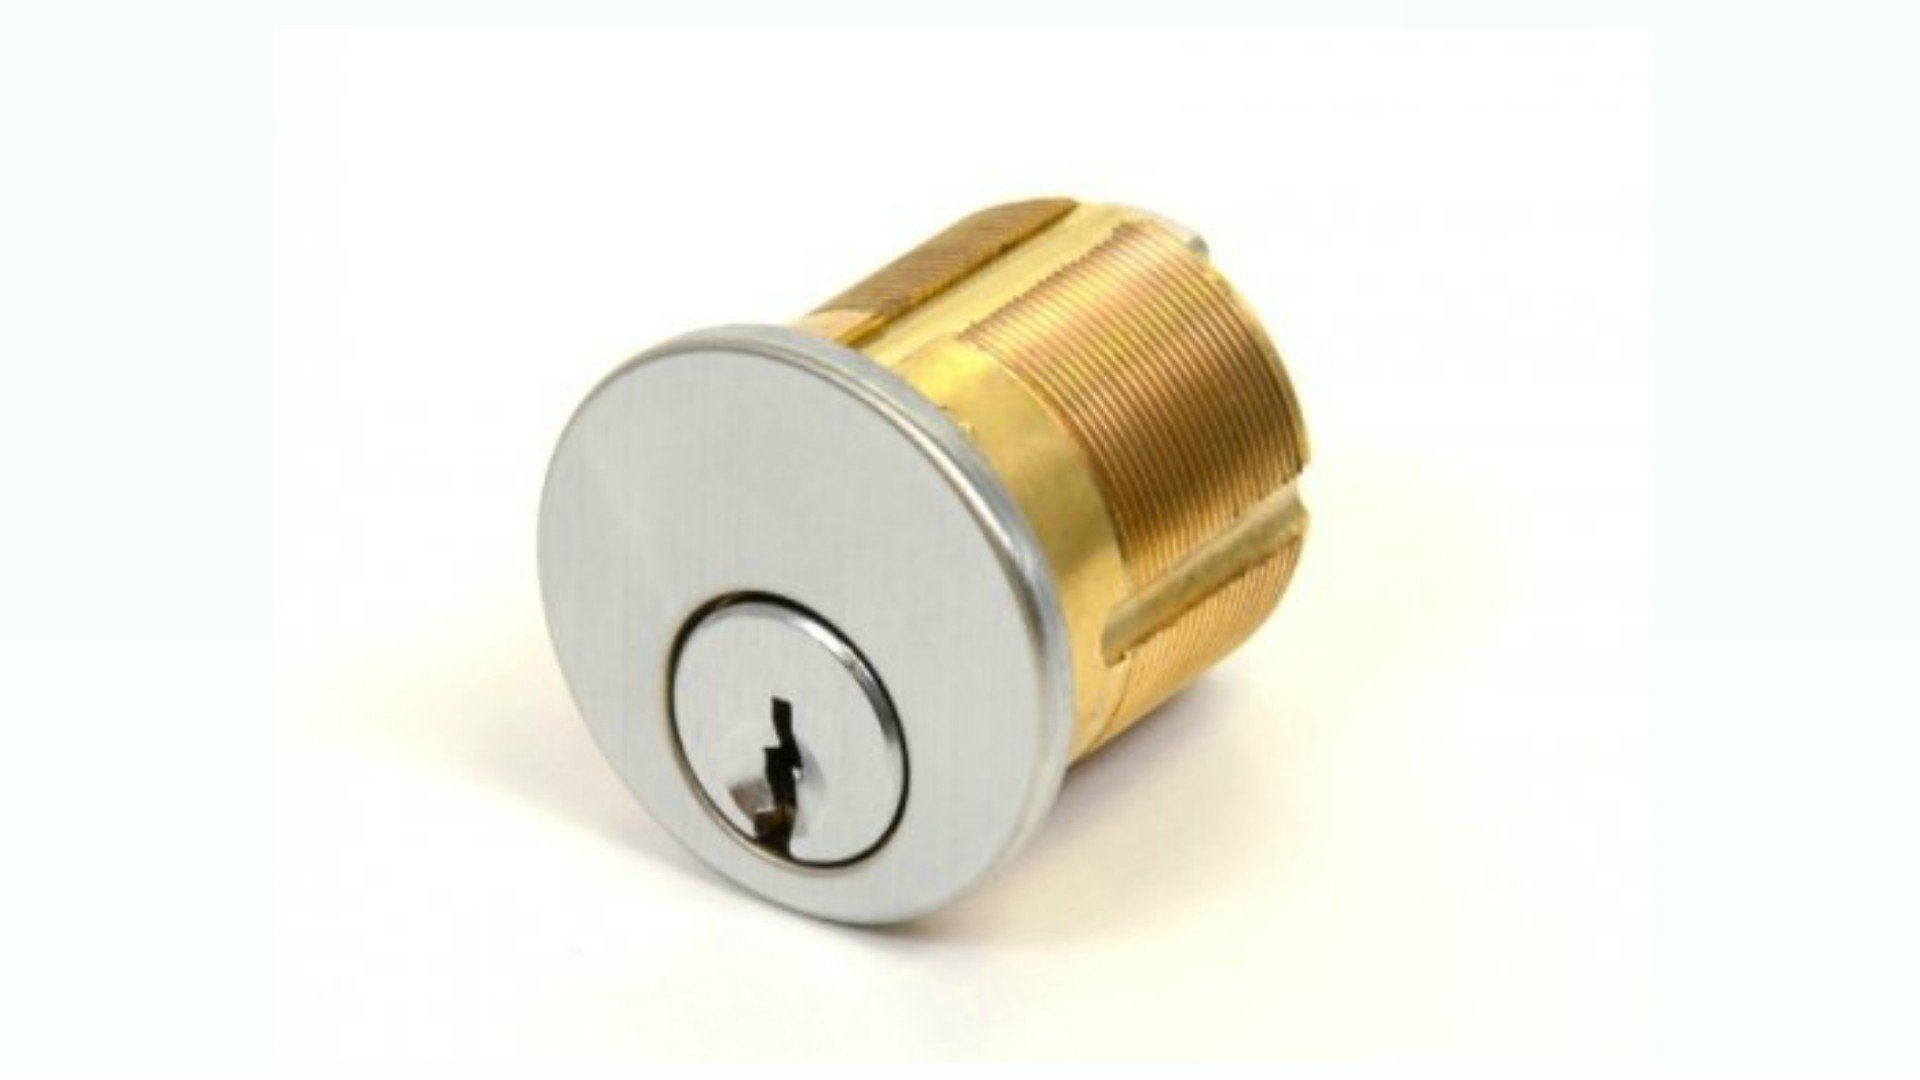 Mortise Keyed Cylinder 1/8'' : High Security Registered Key Lock : Do Not Duplicate Stamped Keys : Keyed Alike